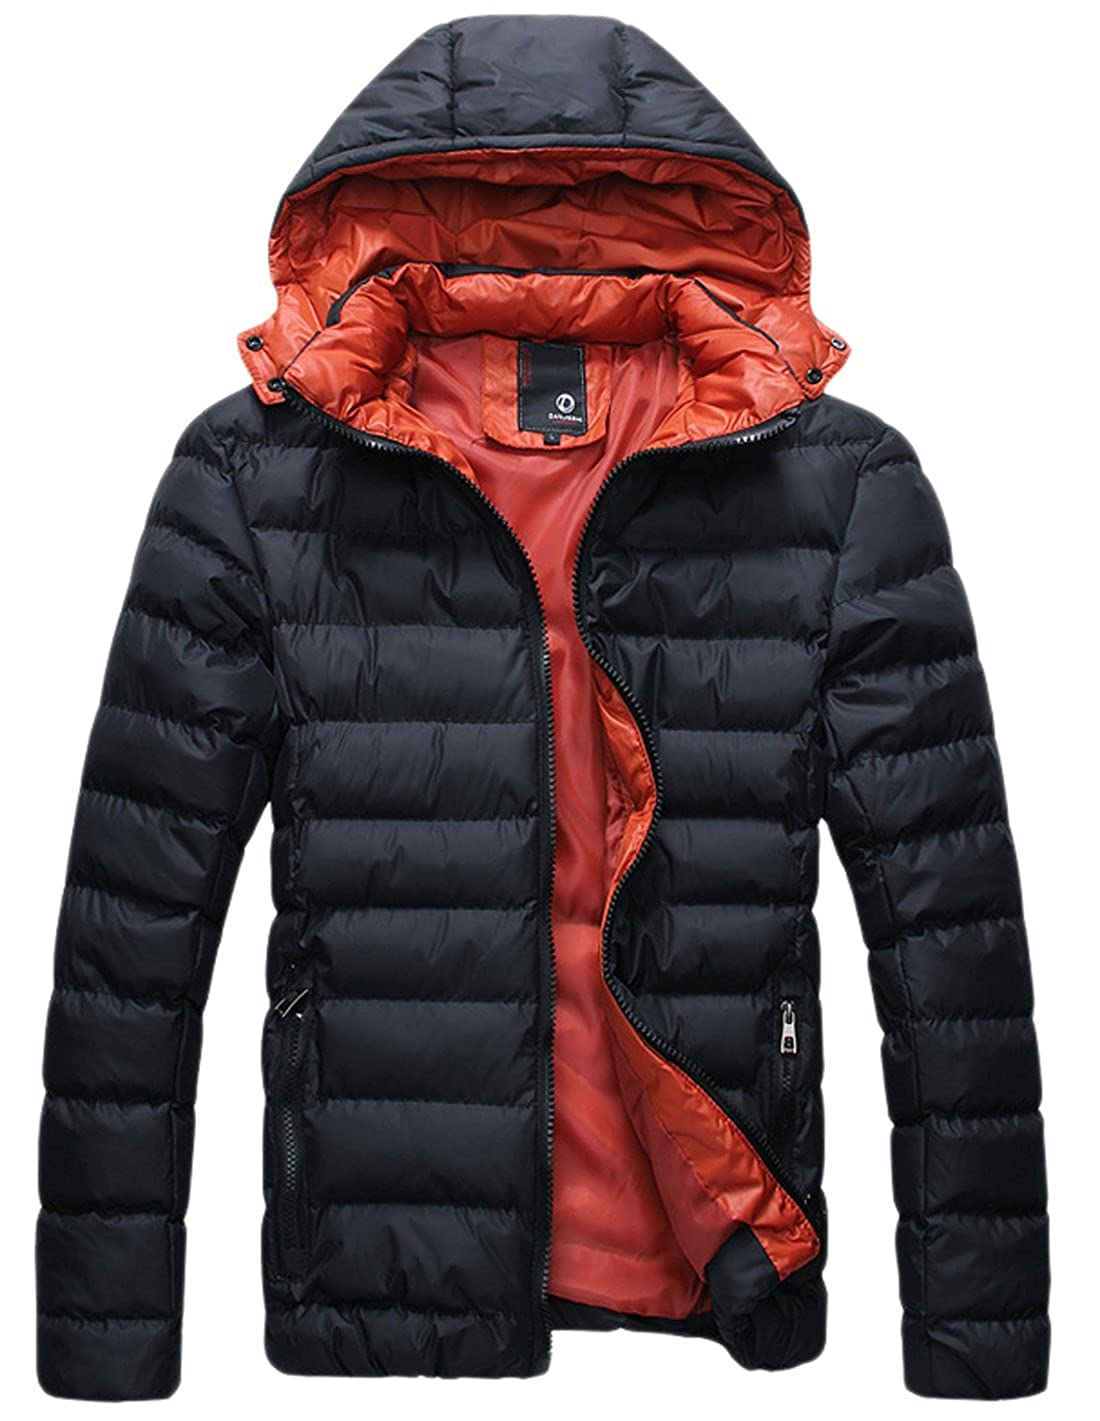 9e8cebcc1c chouyatou Men s Winter Waterproof Frost-Fighter Hooded Puffer Jacket at  Amazon Men s Clothing store